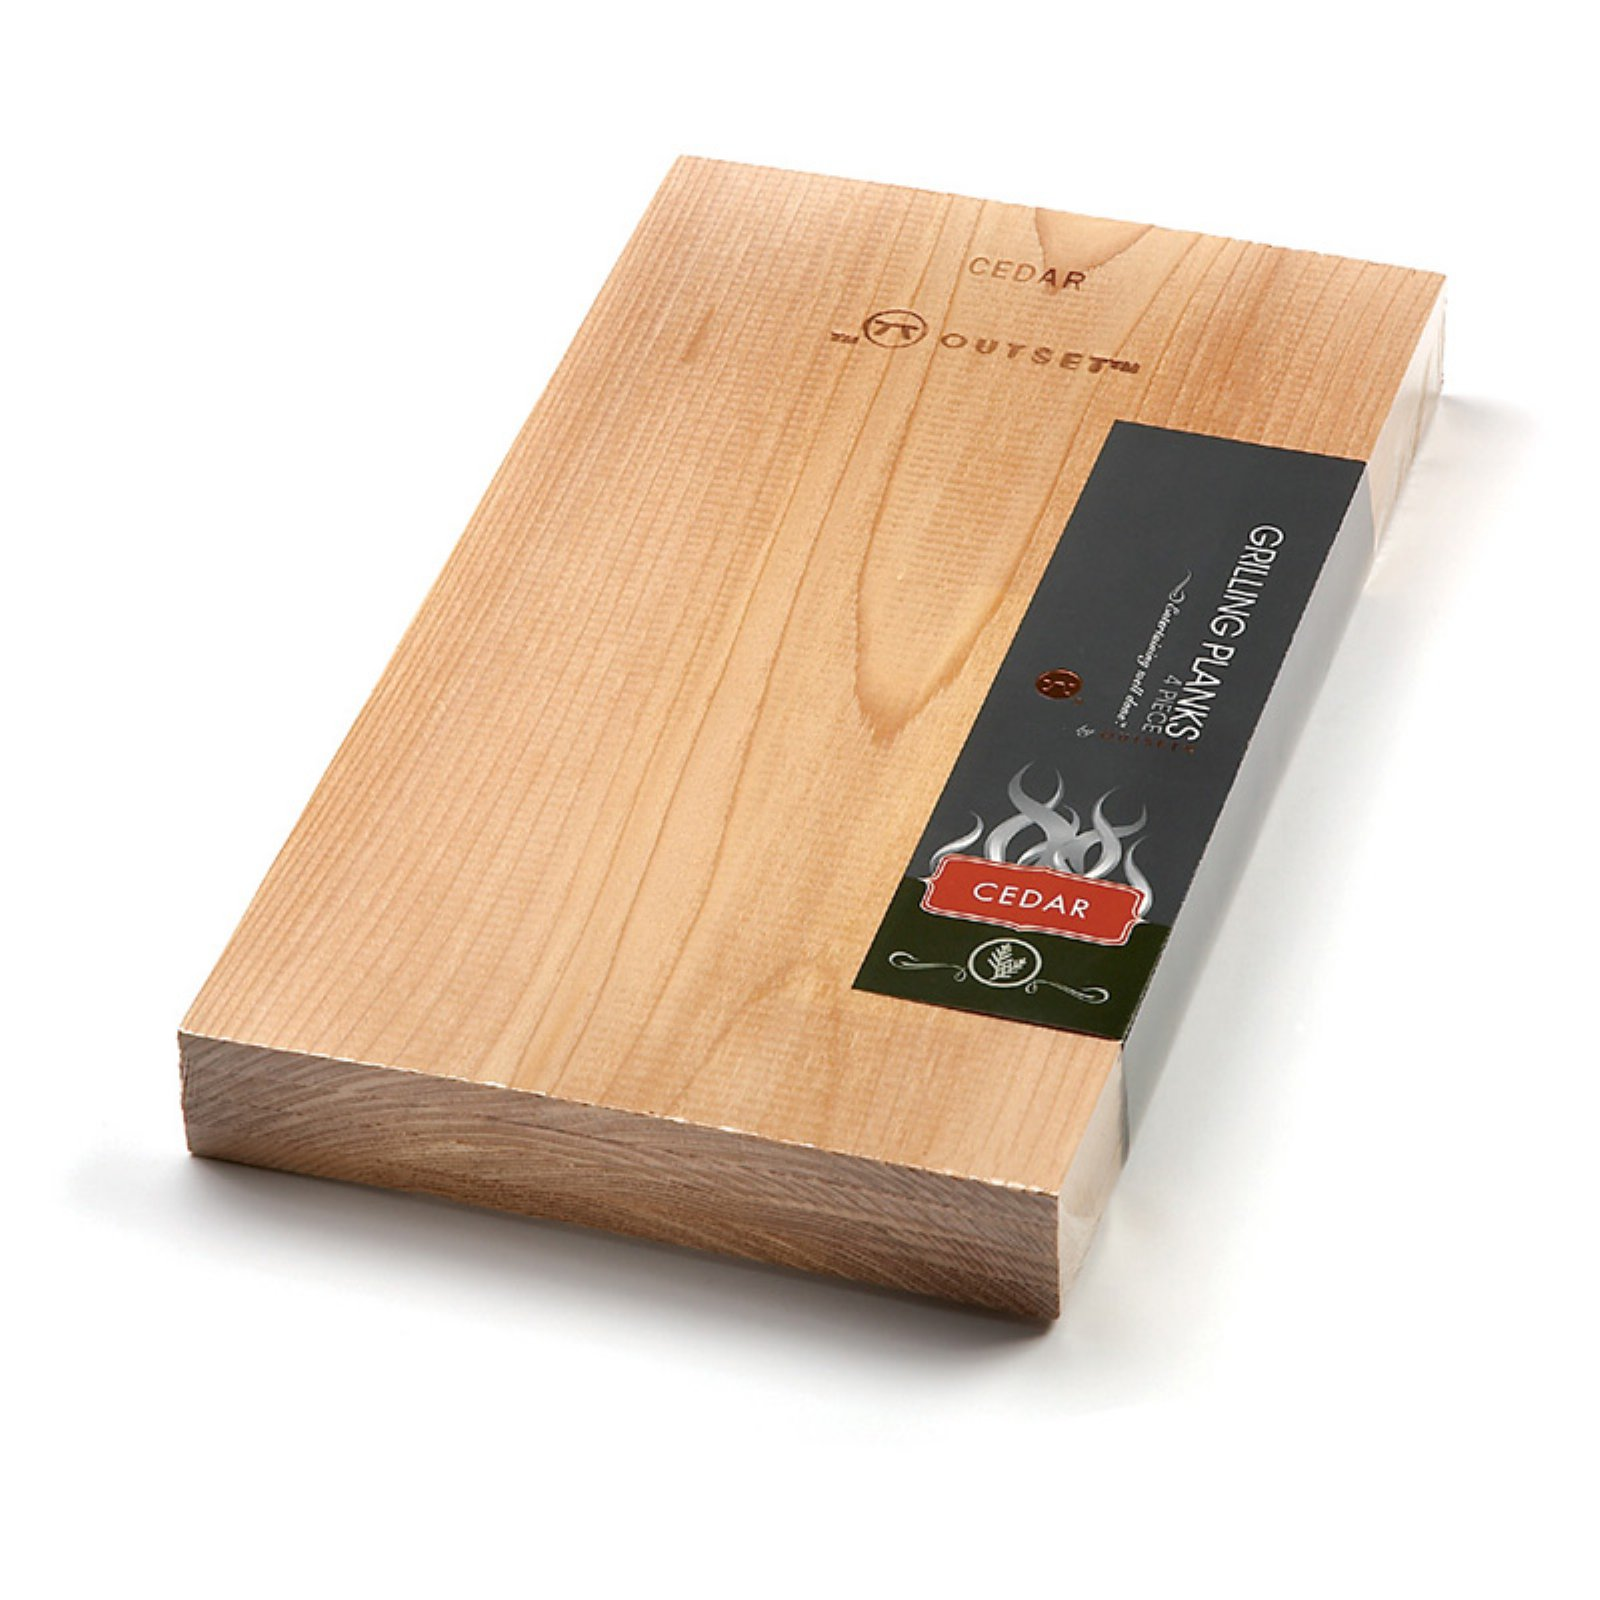 Outset F715 Cedar Planks - Set of 4